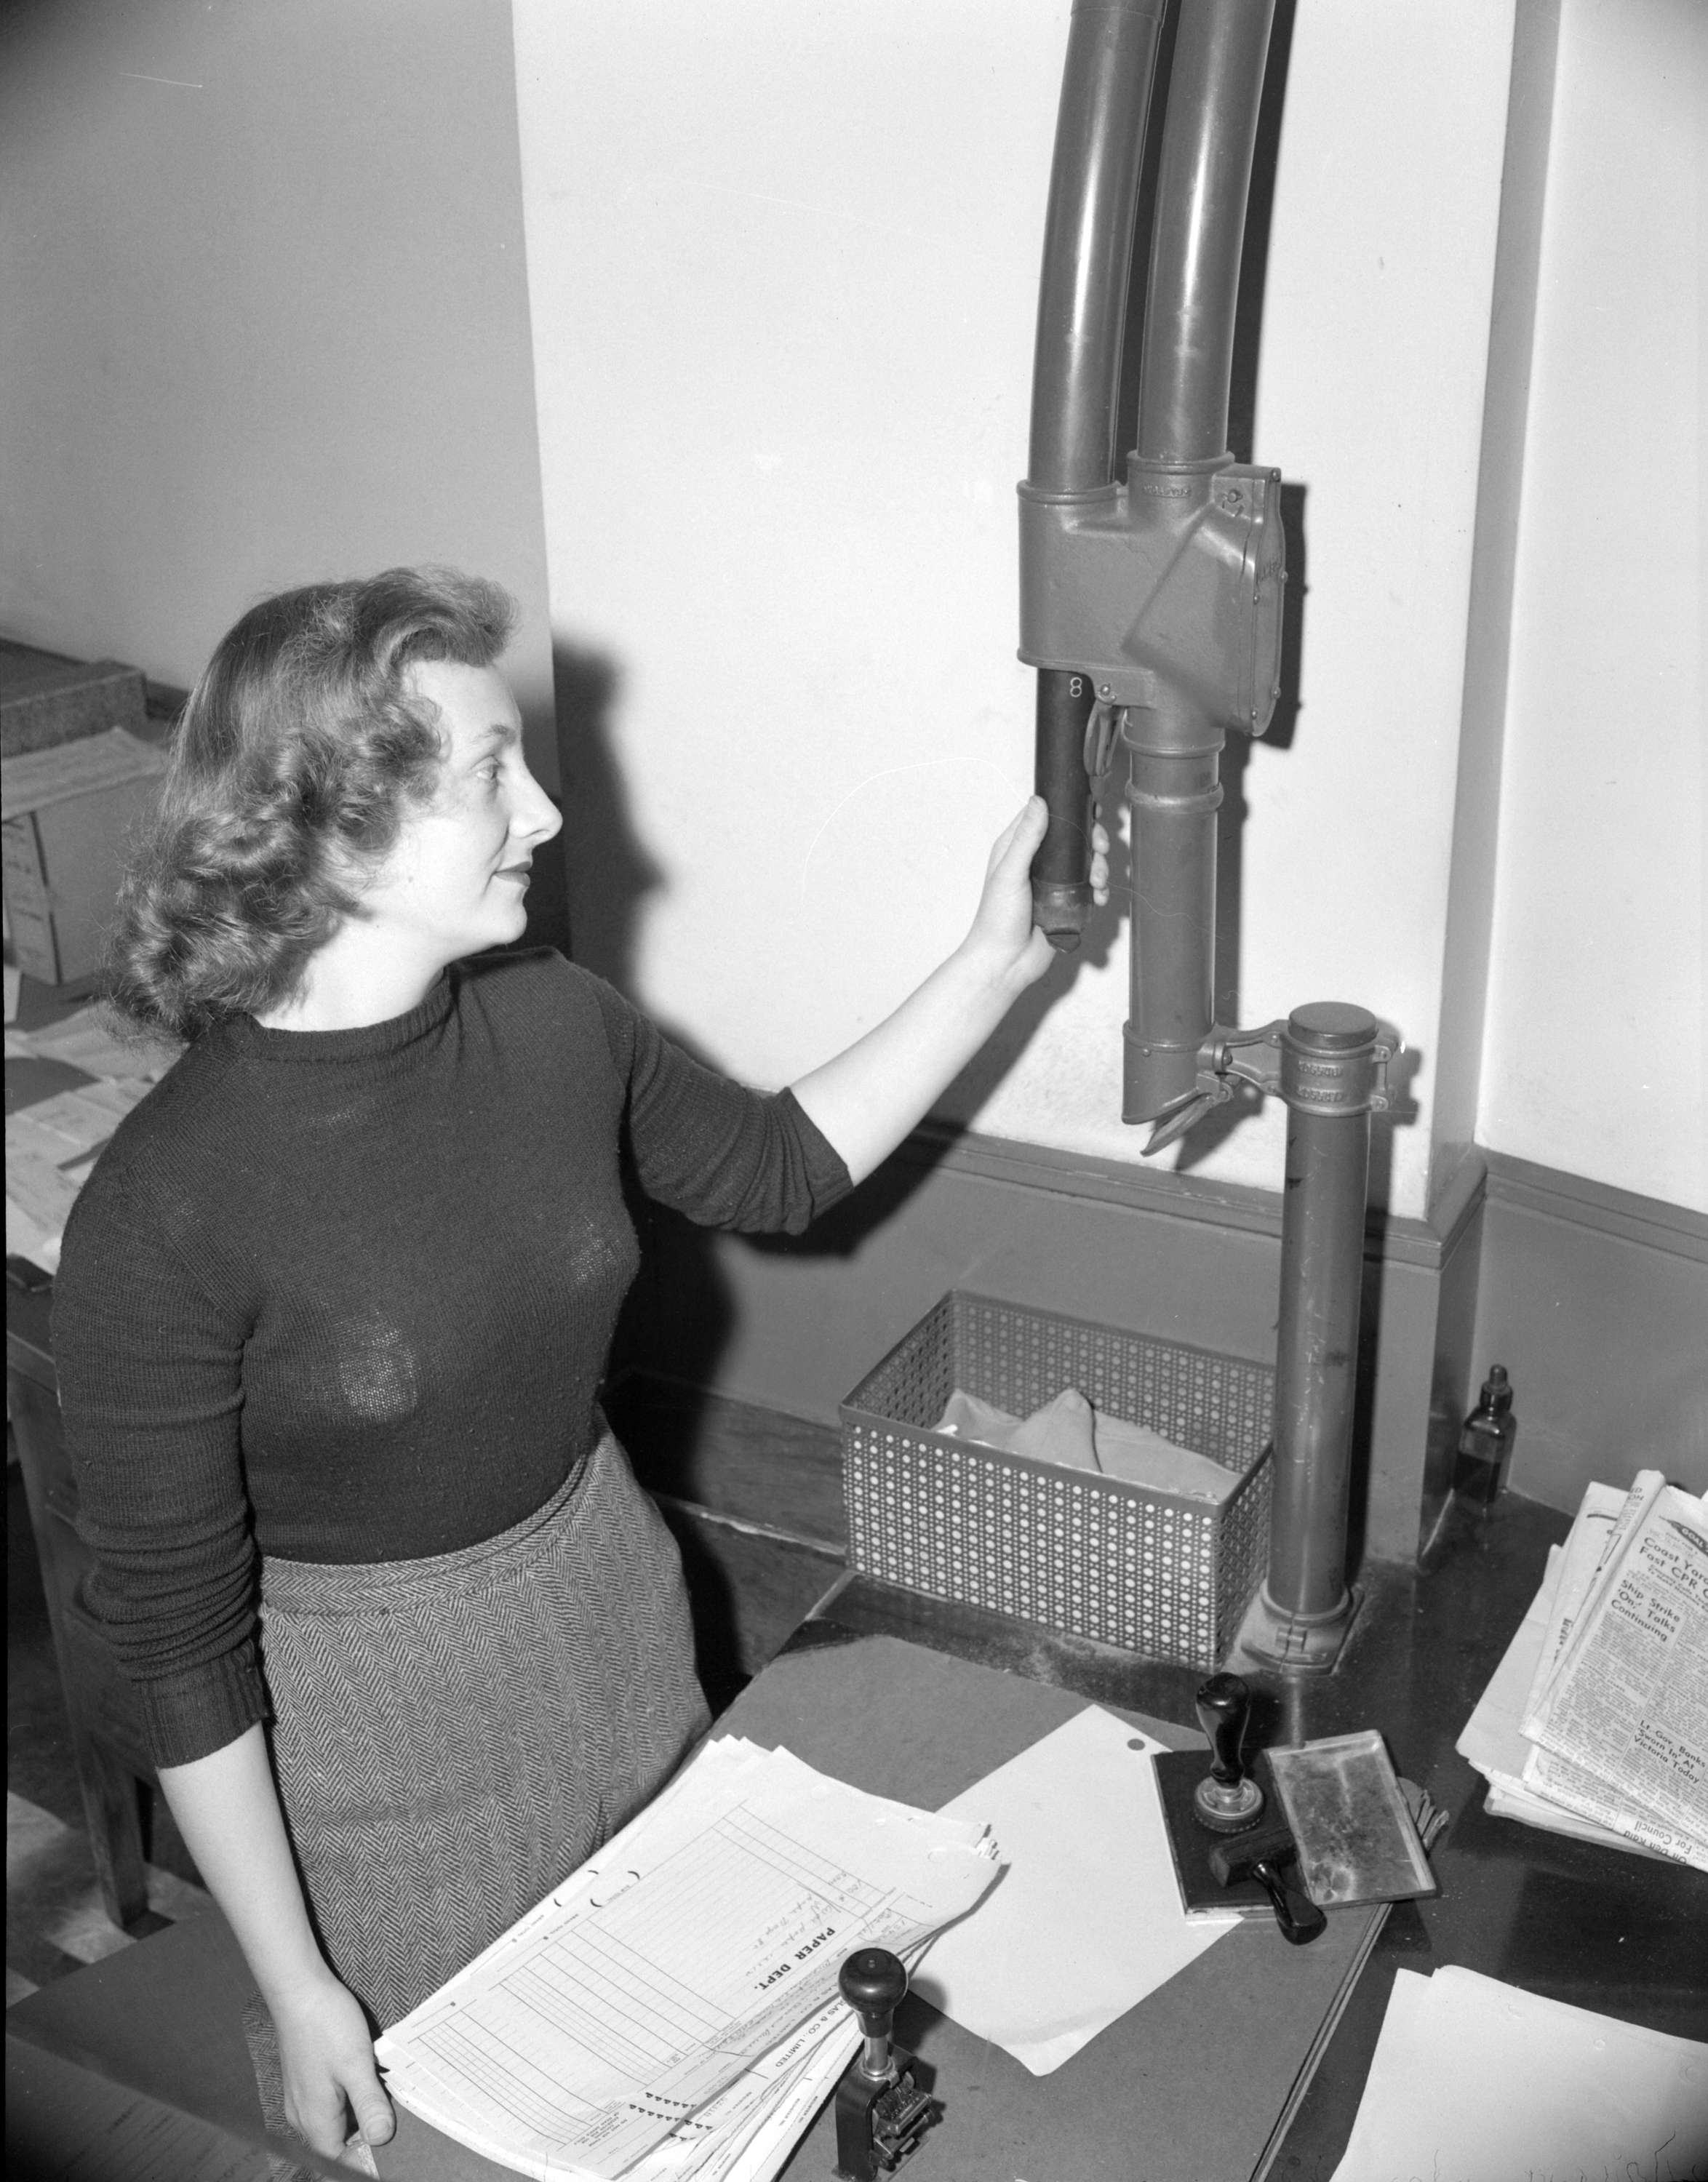 Tube office Lighting Open Original Digital Object Breezeclearcom Woman Using The Pneumatic Tube System At The Offices Of Kelly